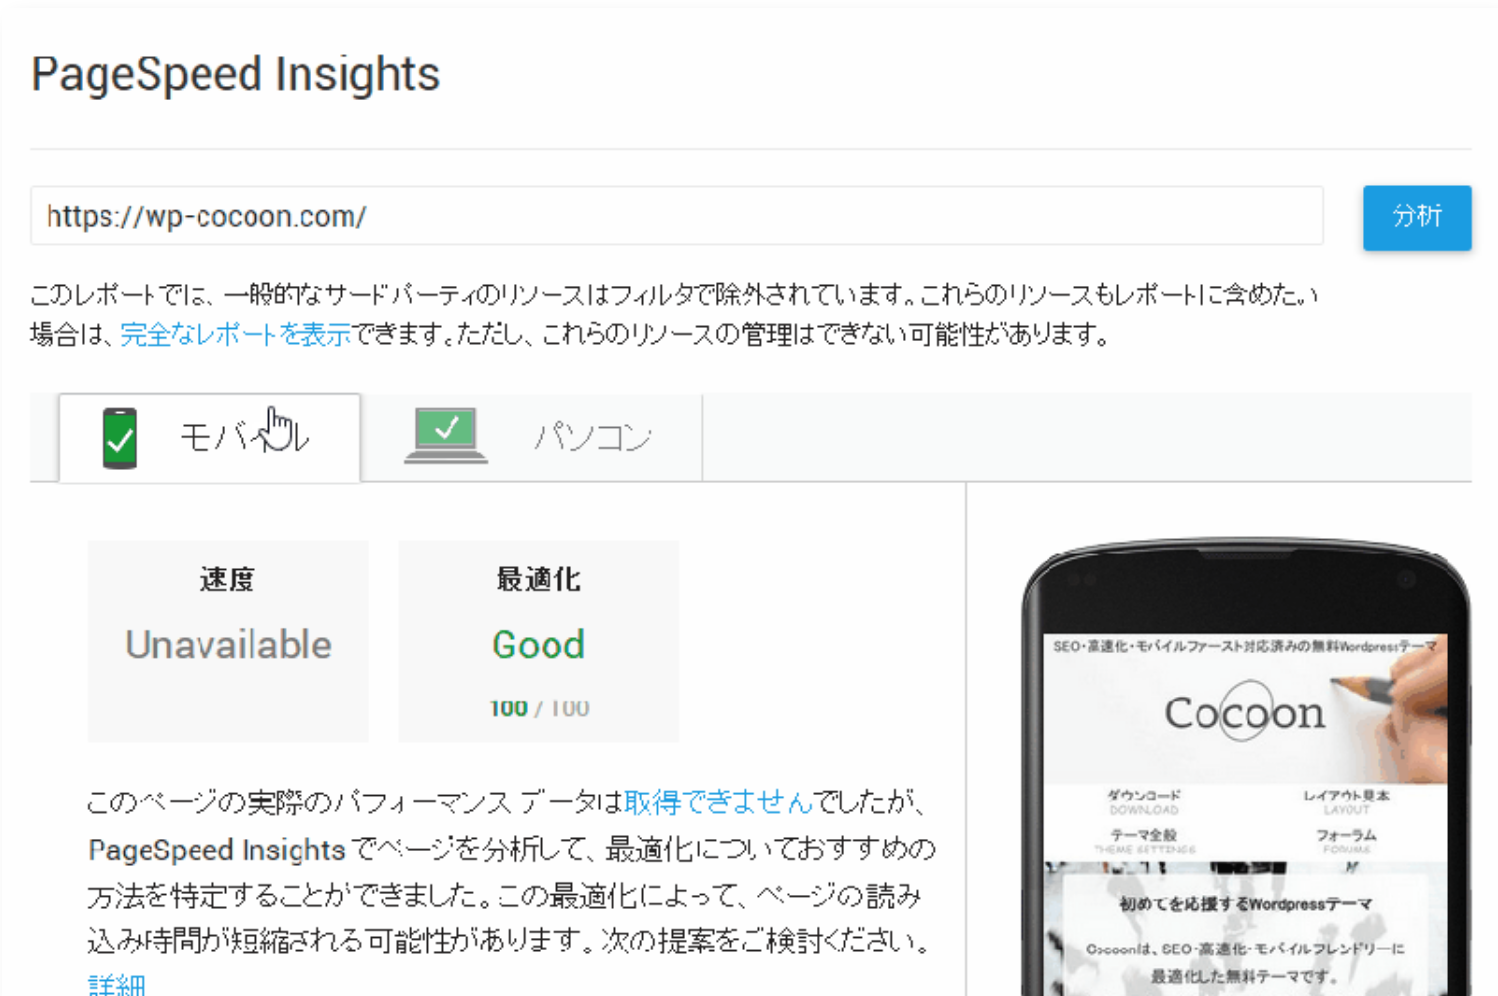 wordpress-cocoon-ページ高速化